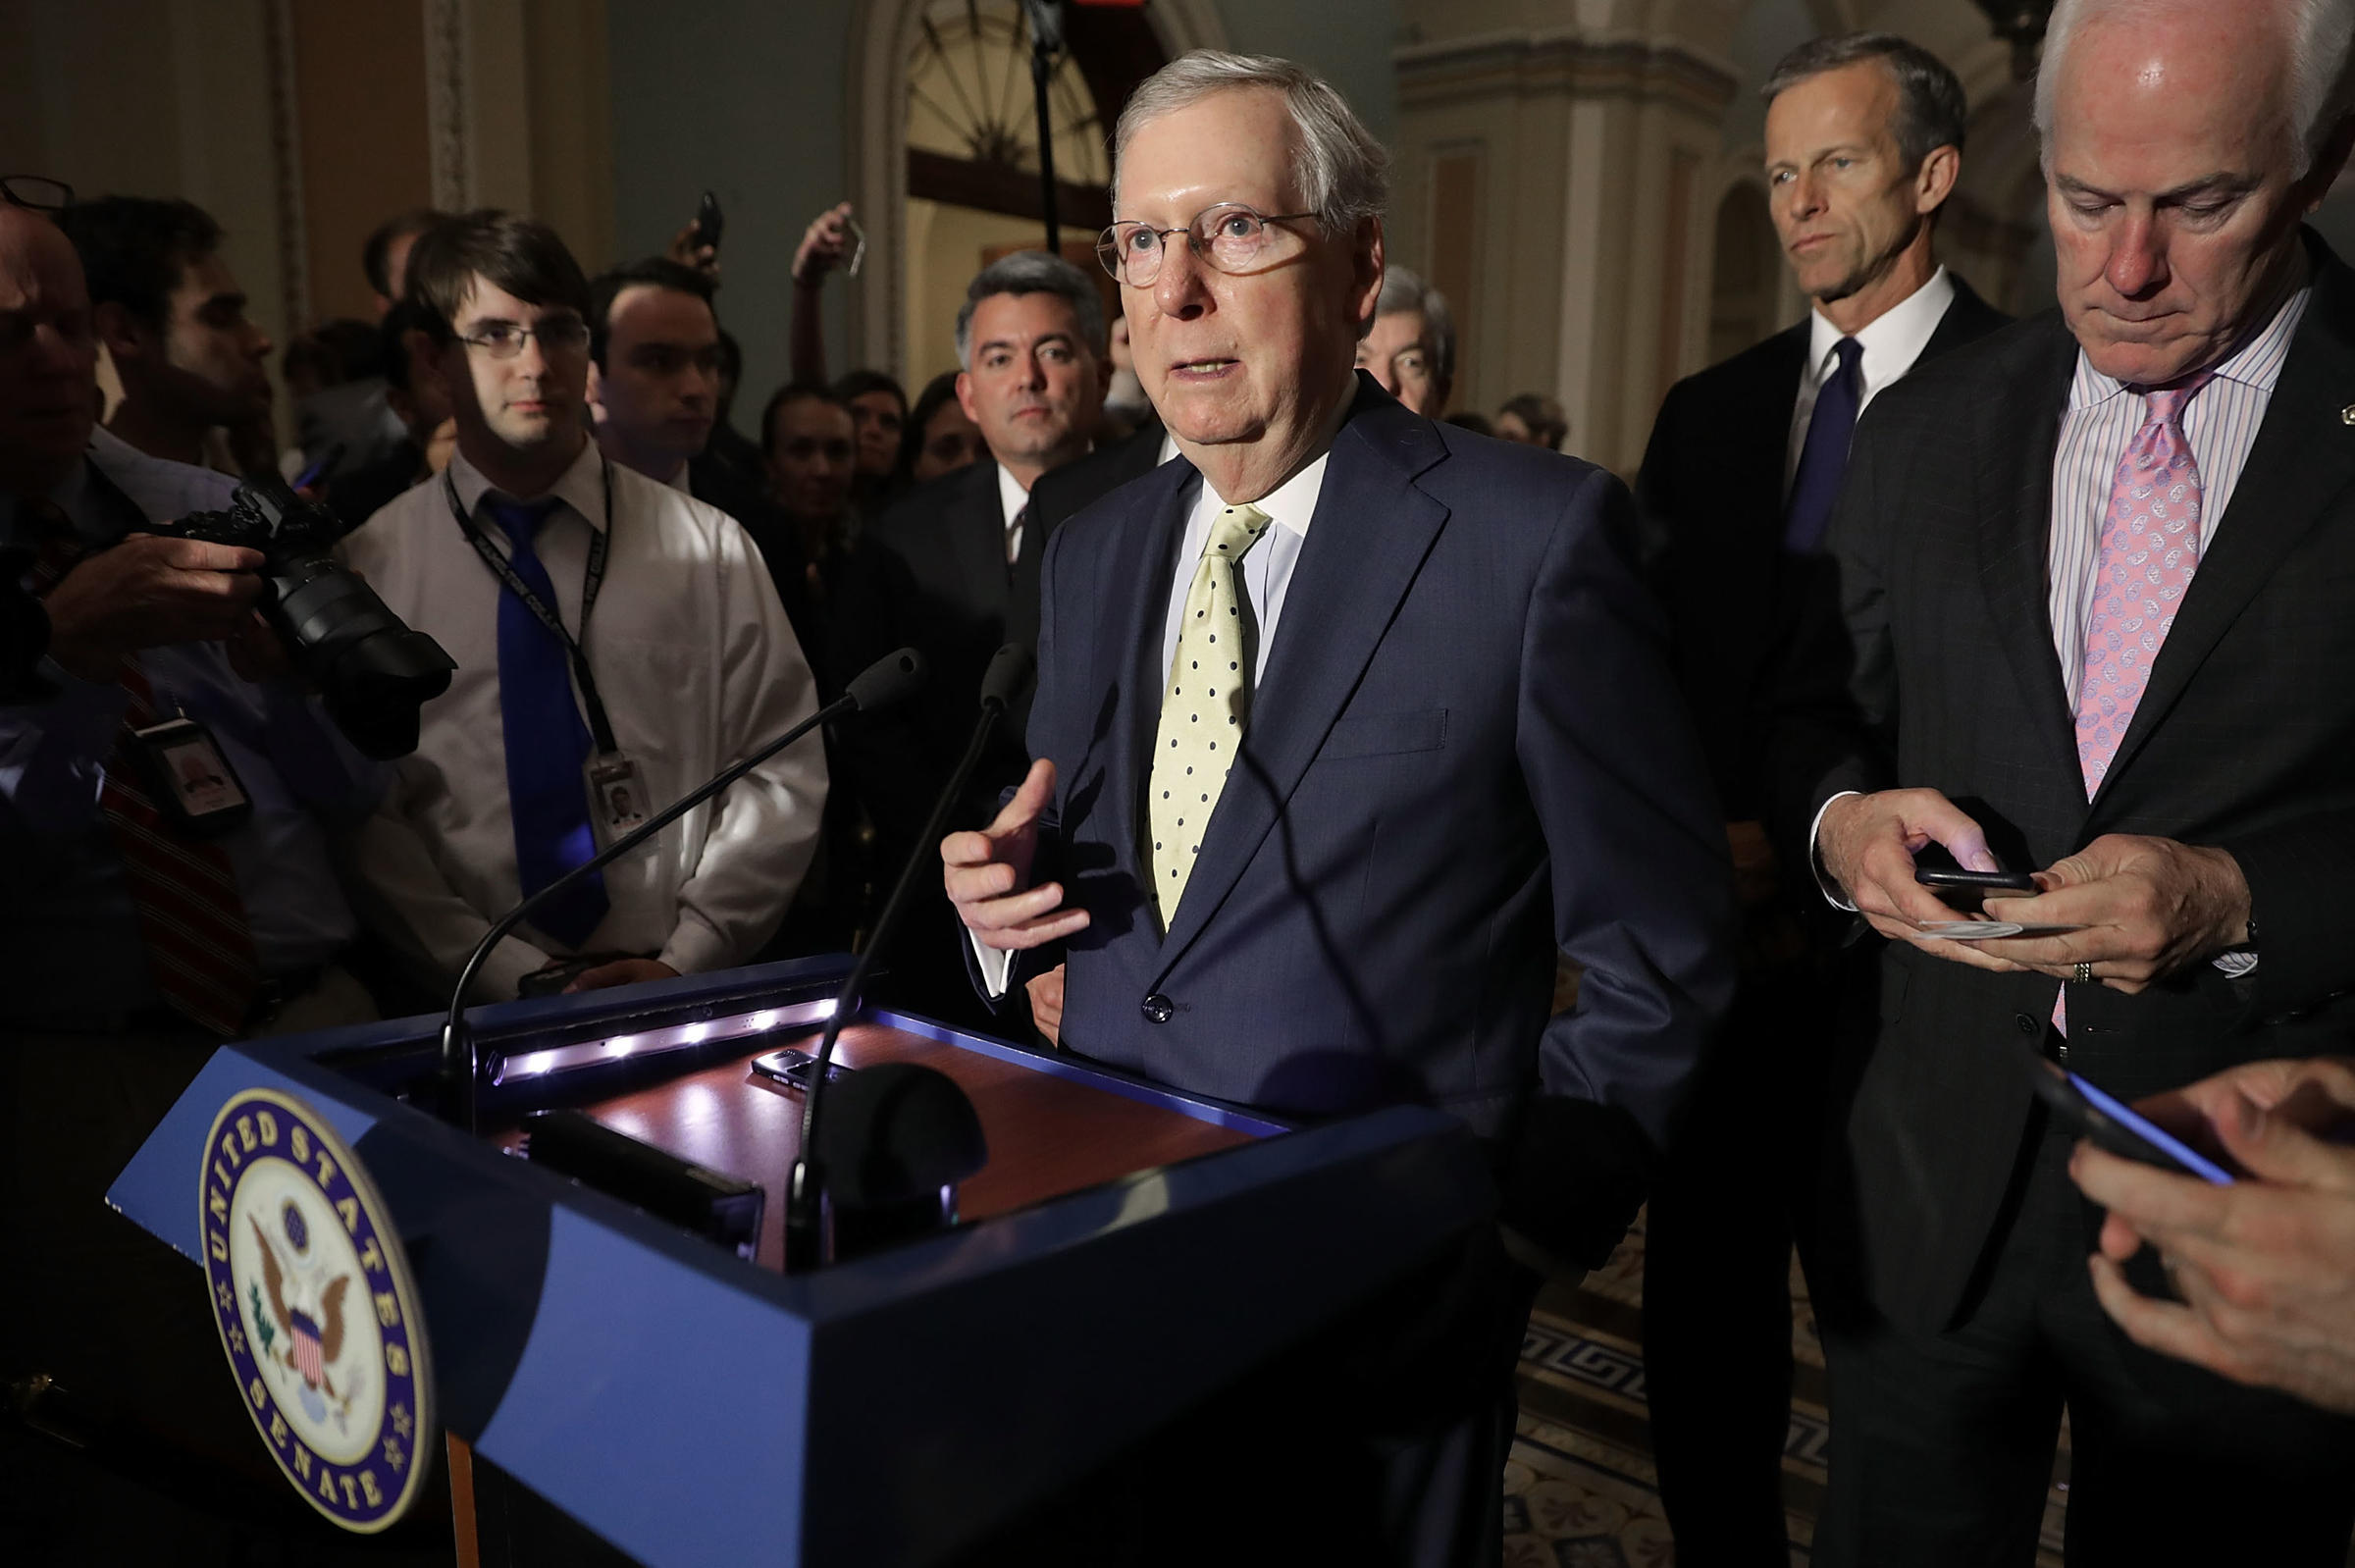 Y Seen Speaking To Reporters On Tuesday Is Set To Release A Draft Of The Senates Version Of The Republican Health Care Bill On Thursday